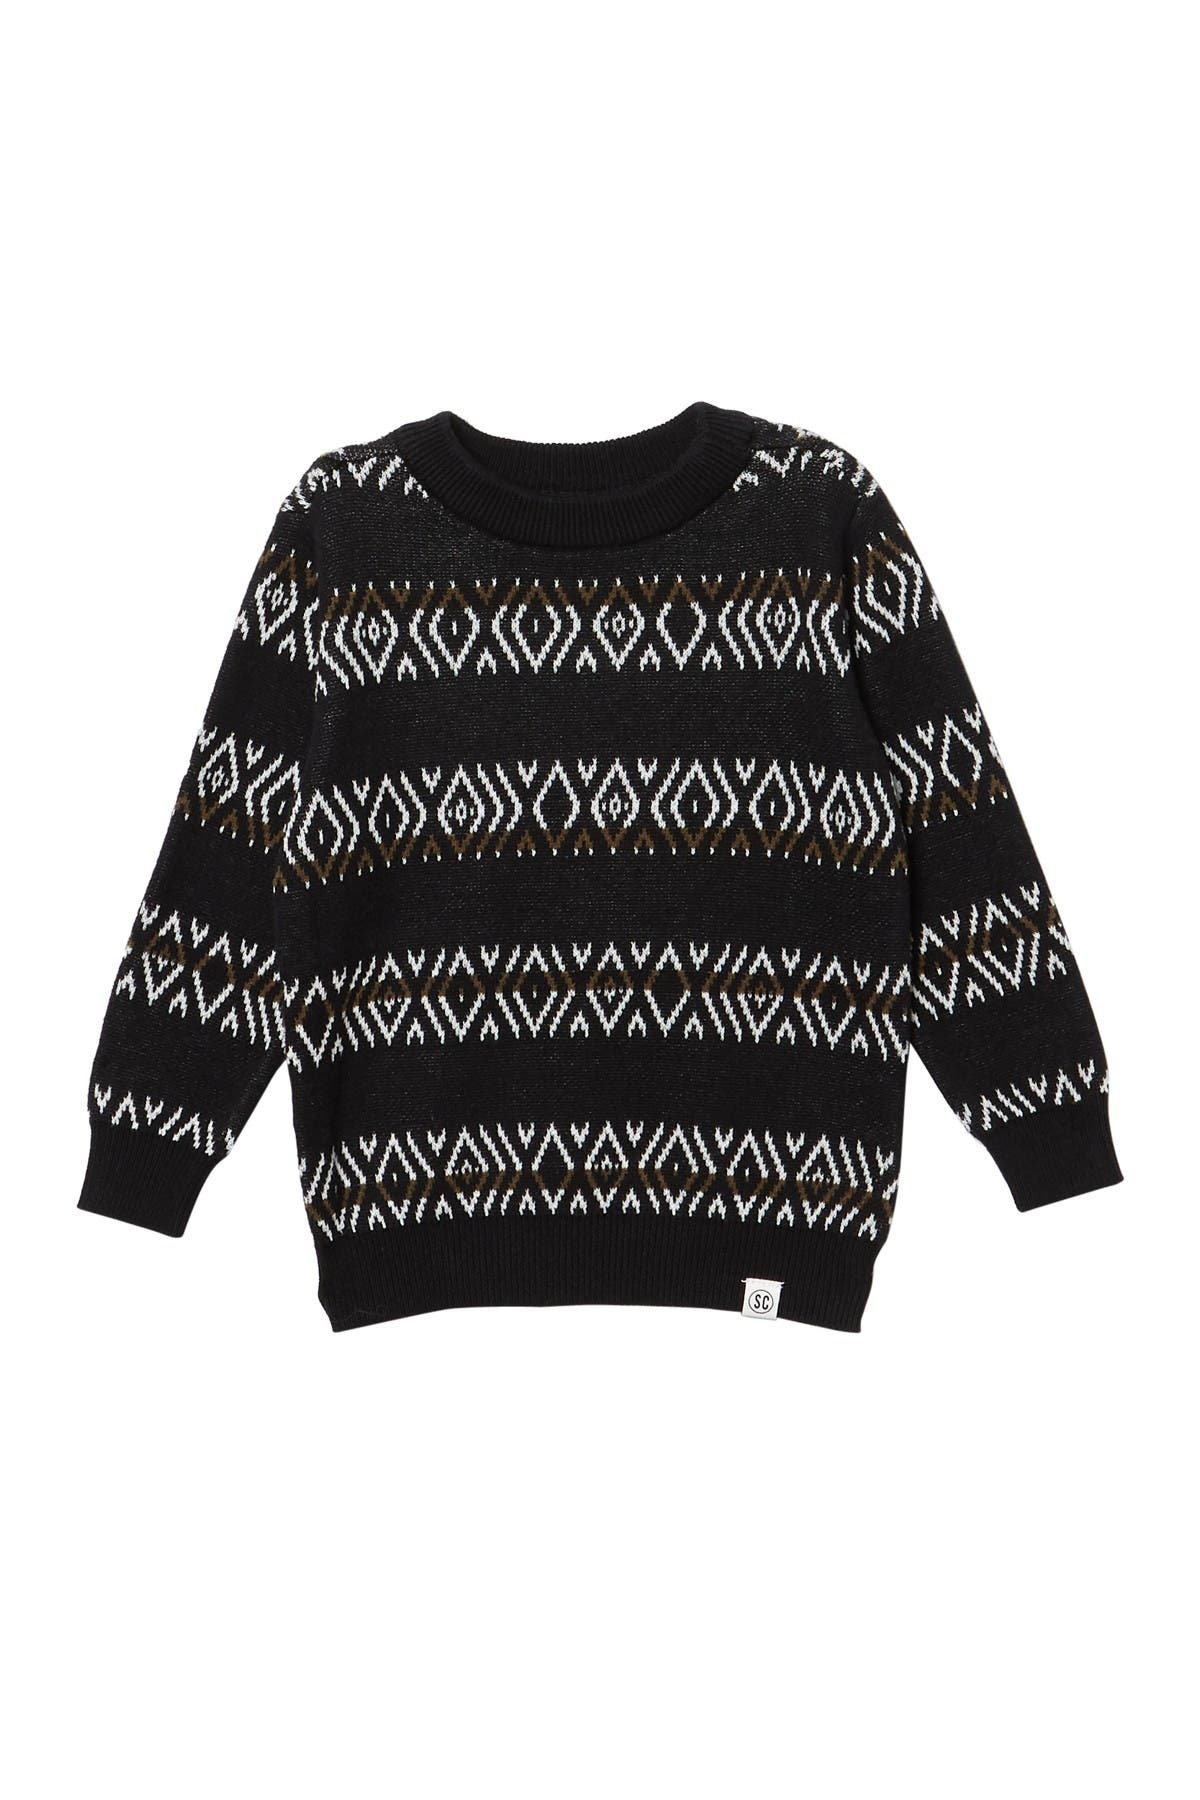 Image of Sovereign Code Rise Sweater